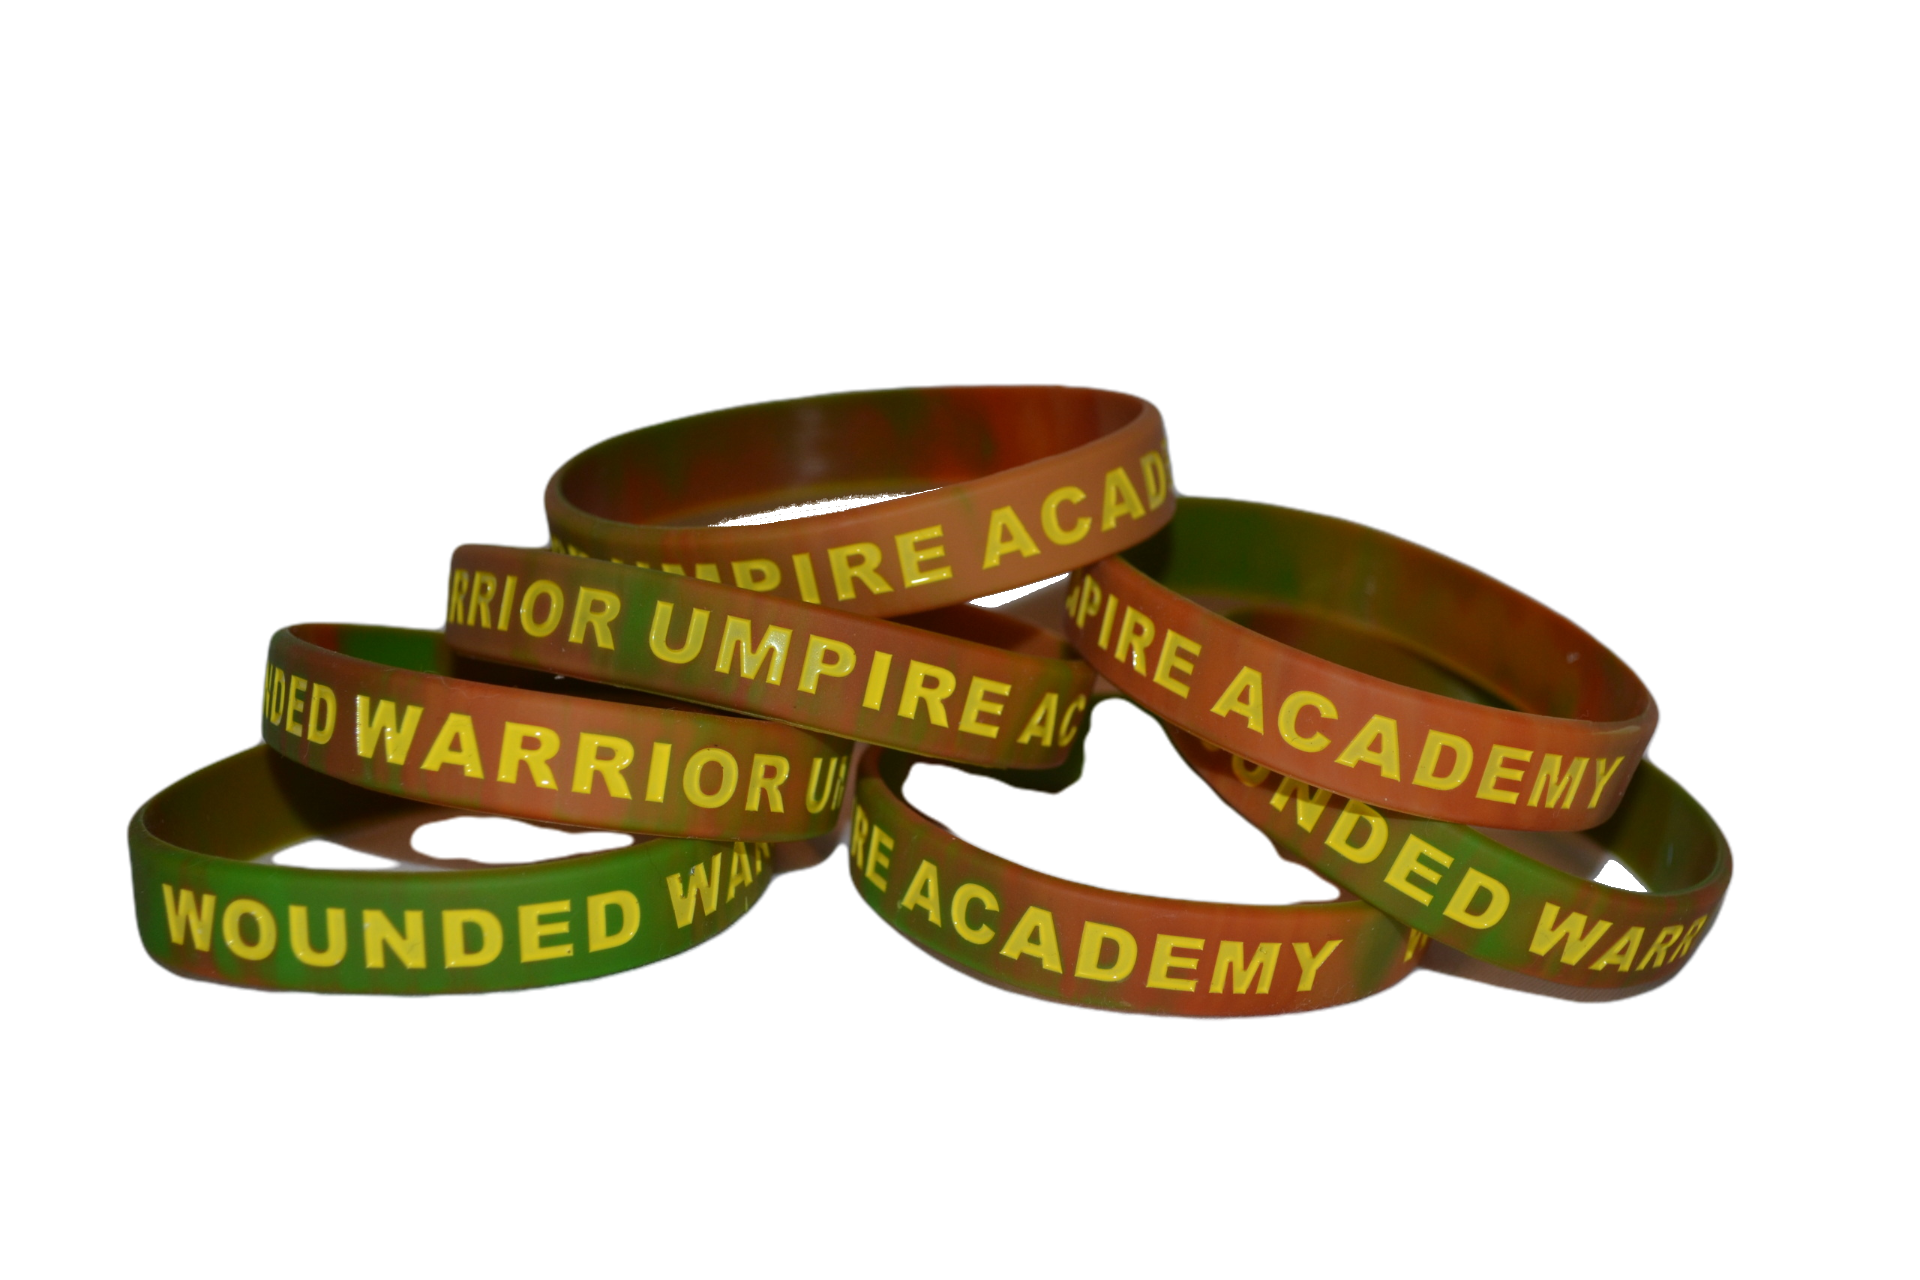 WWUA Wounded Warrior Umpire Academy Band